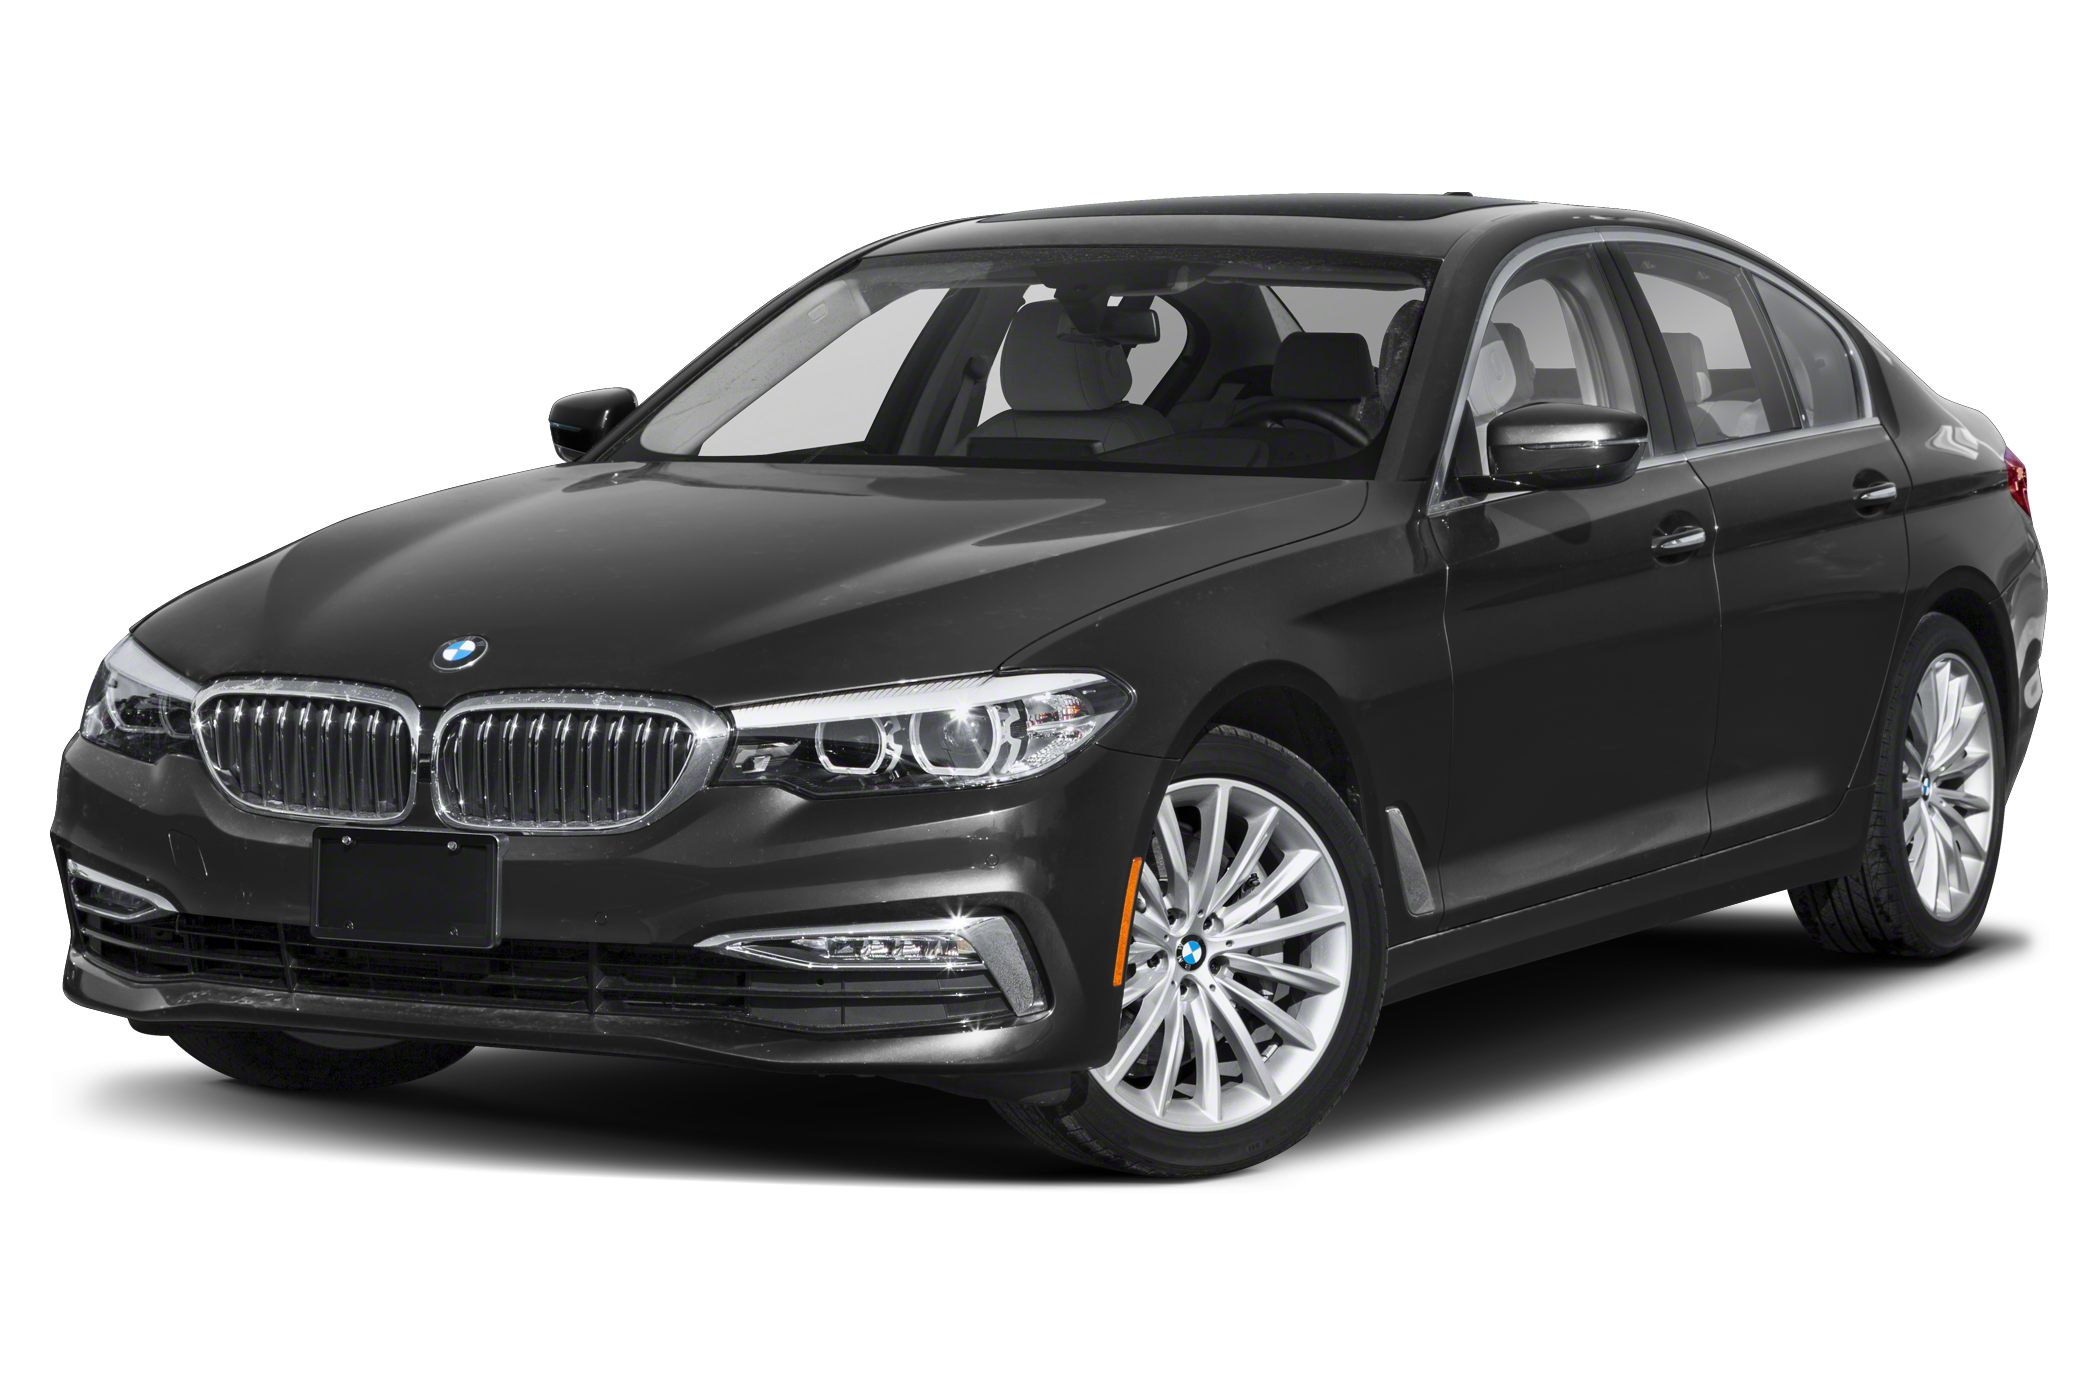 2019 bmw 535i xdrive 2019 BMW 5 Series Deals, Prices, Incentives & Leases, Overview  2019 bmw 535i xdrive